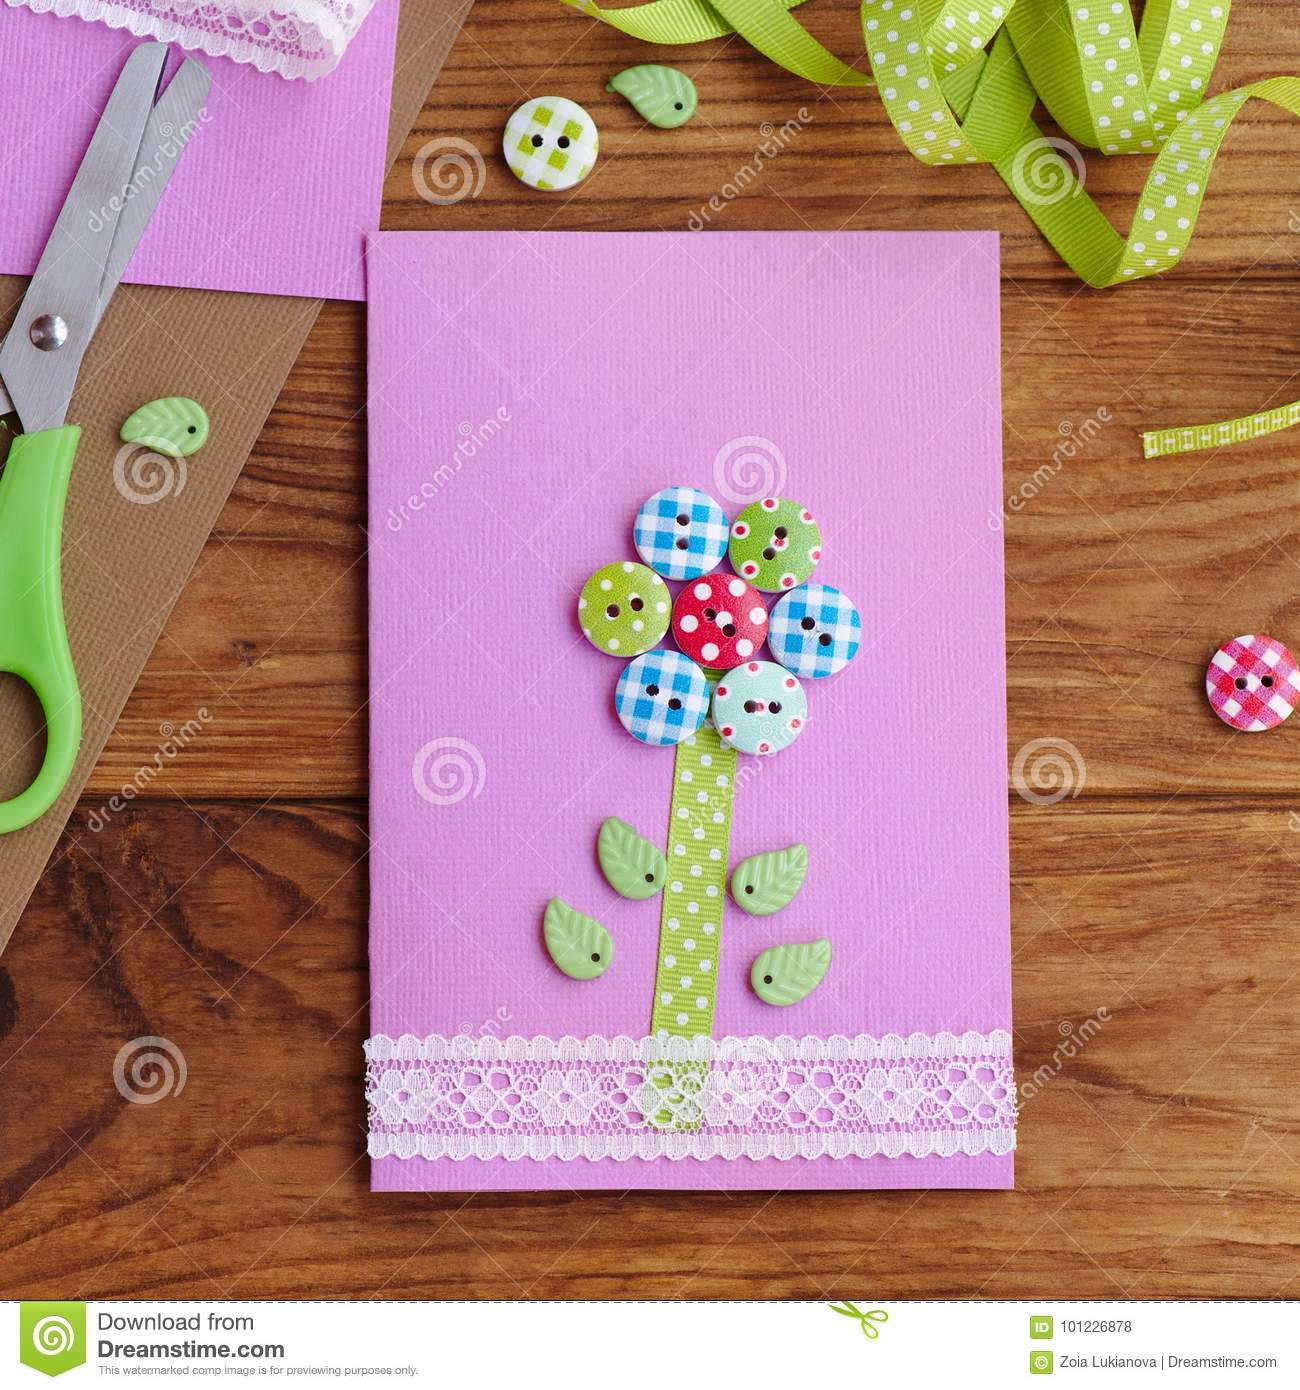 Homemade Greeting Card For Kids To Make Stationery On A Brown